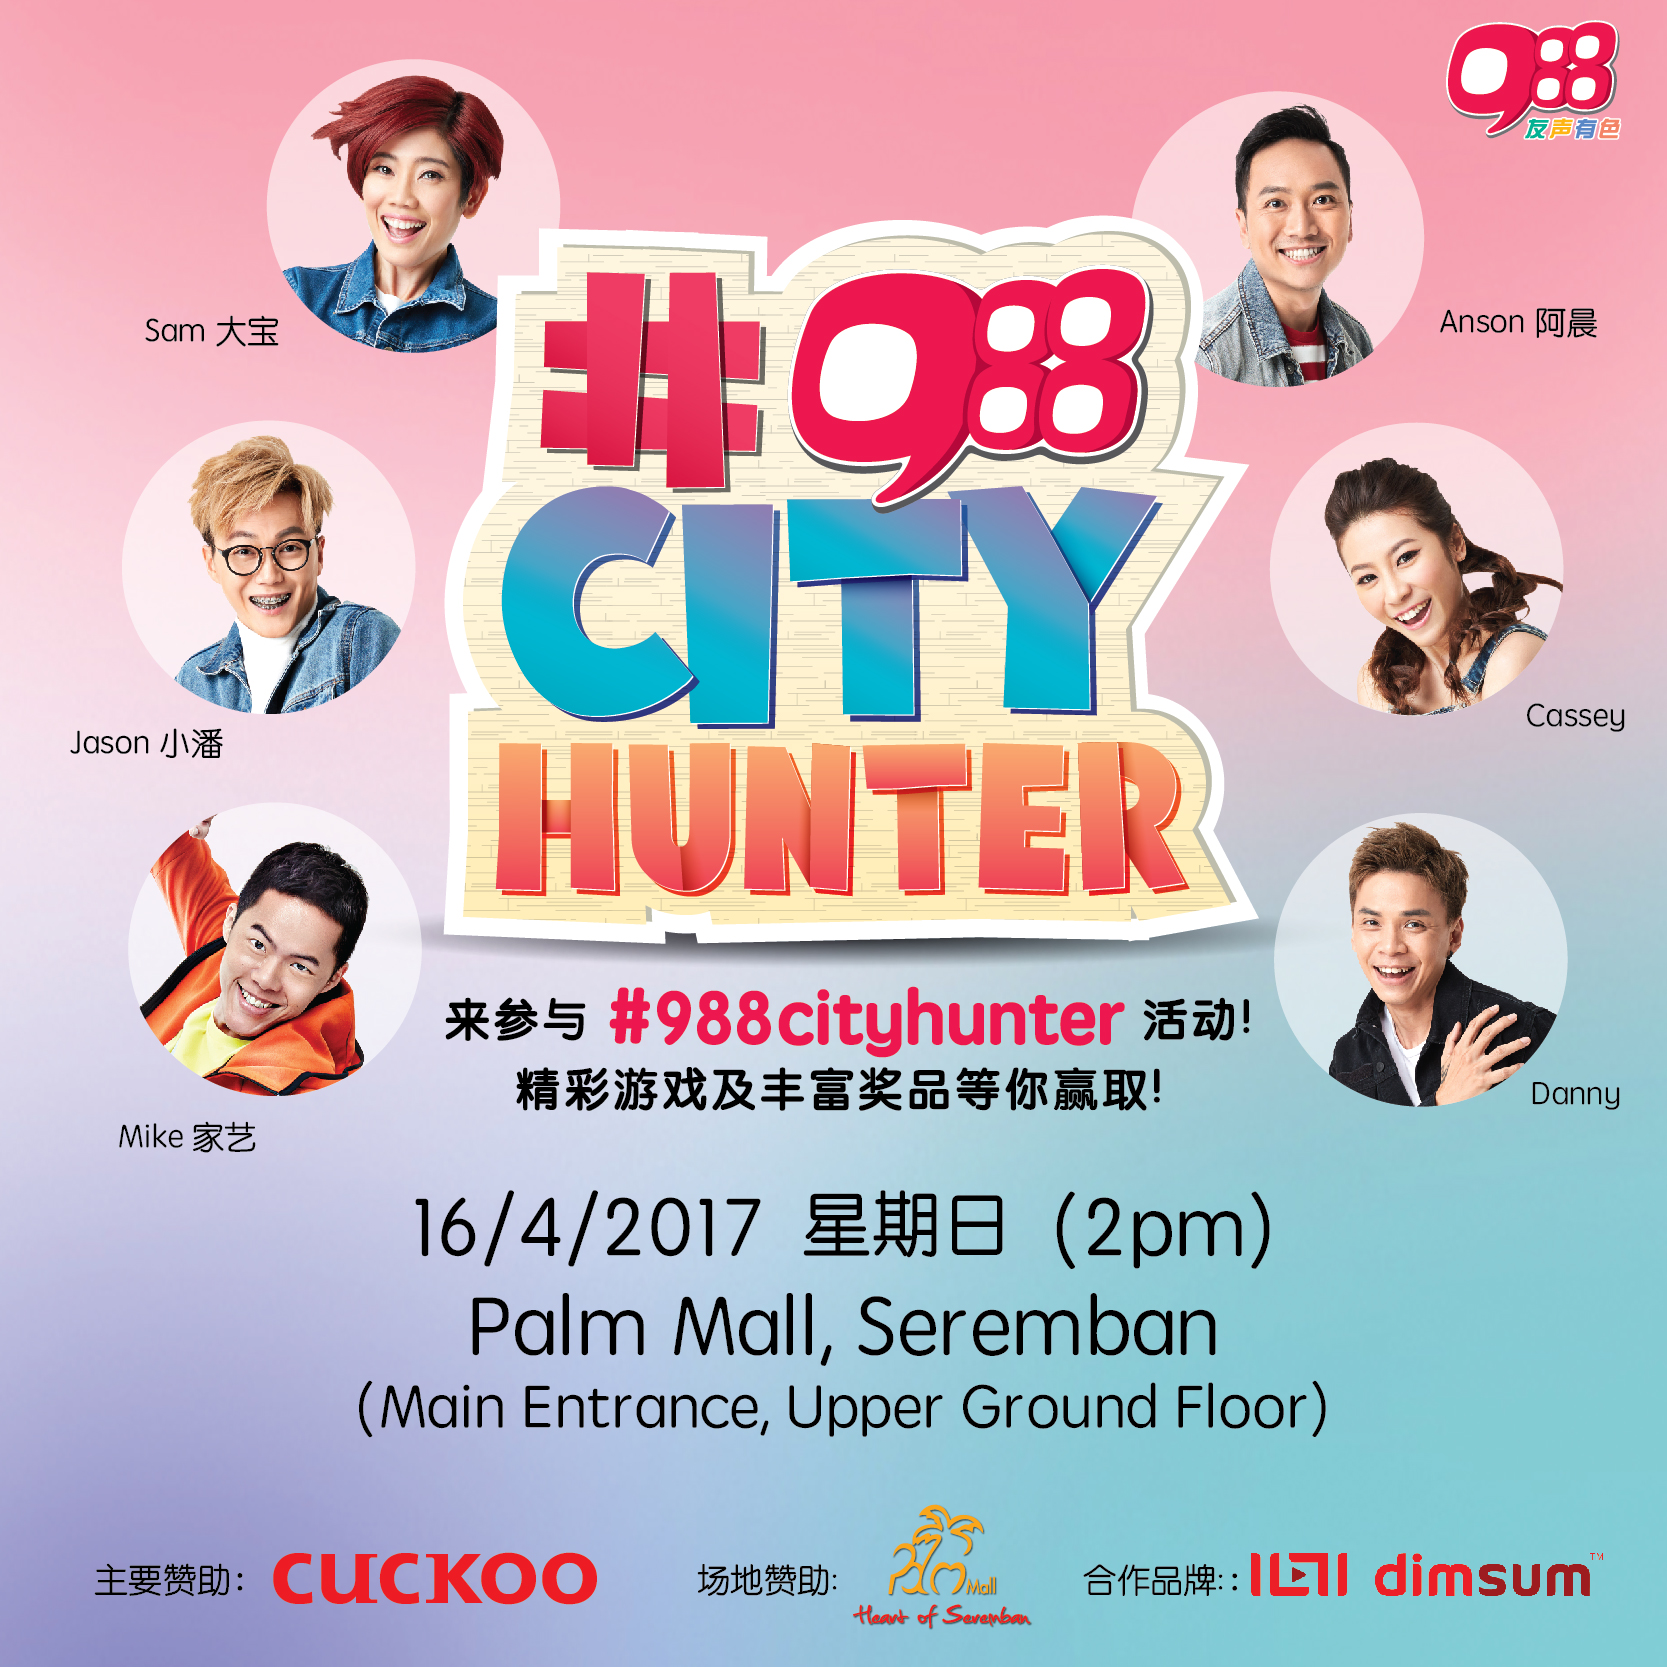 988 FM City Hunter Roadshow